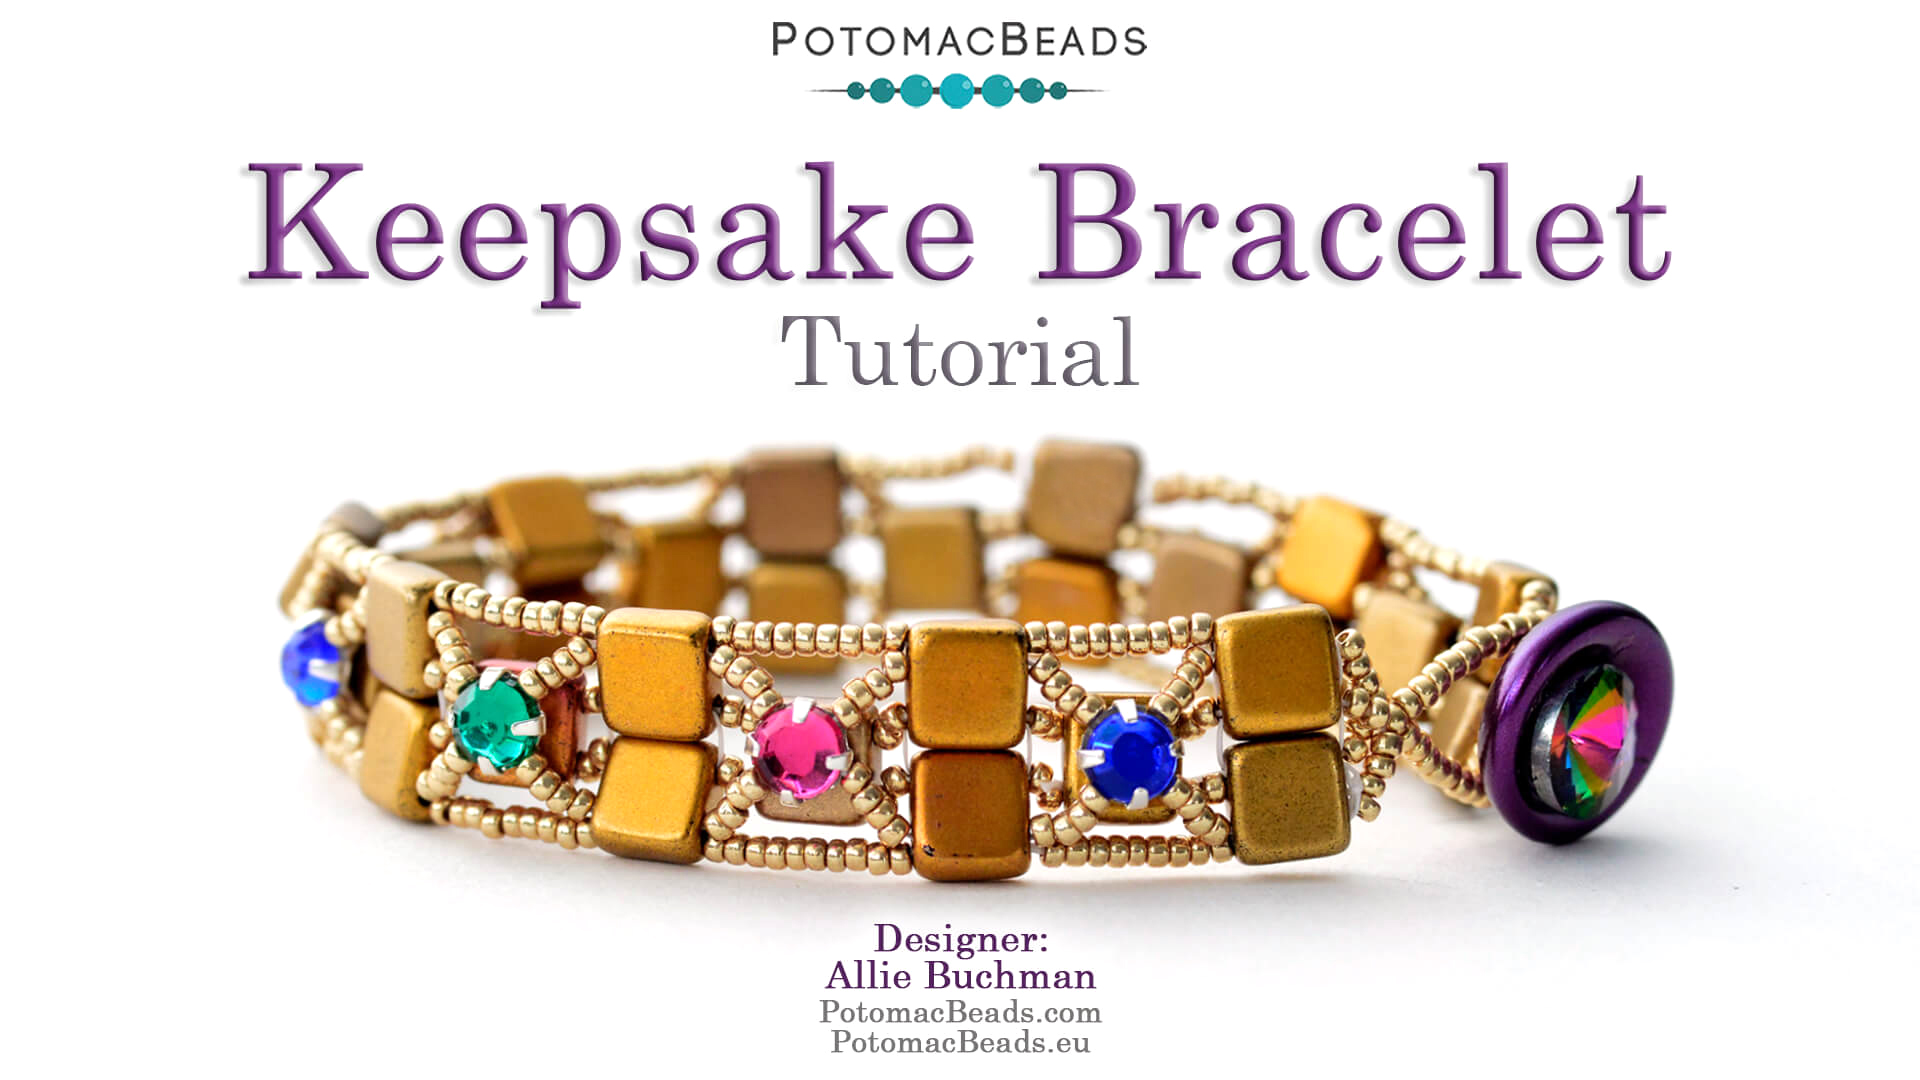 How to Bead / Videos Sorted by Beads / All Other Bead Videos / Keepsake Bracelet Tutorial